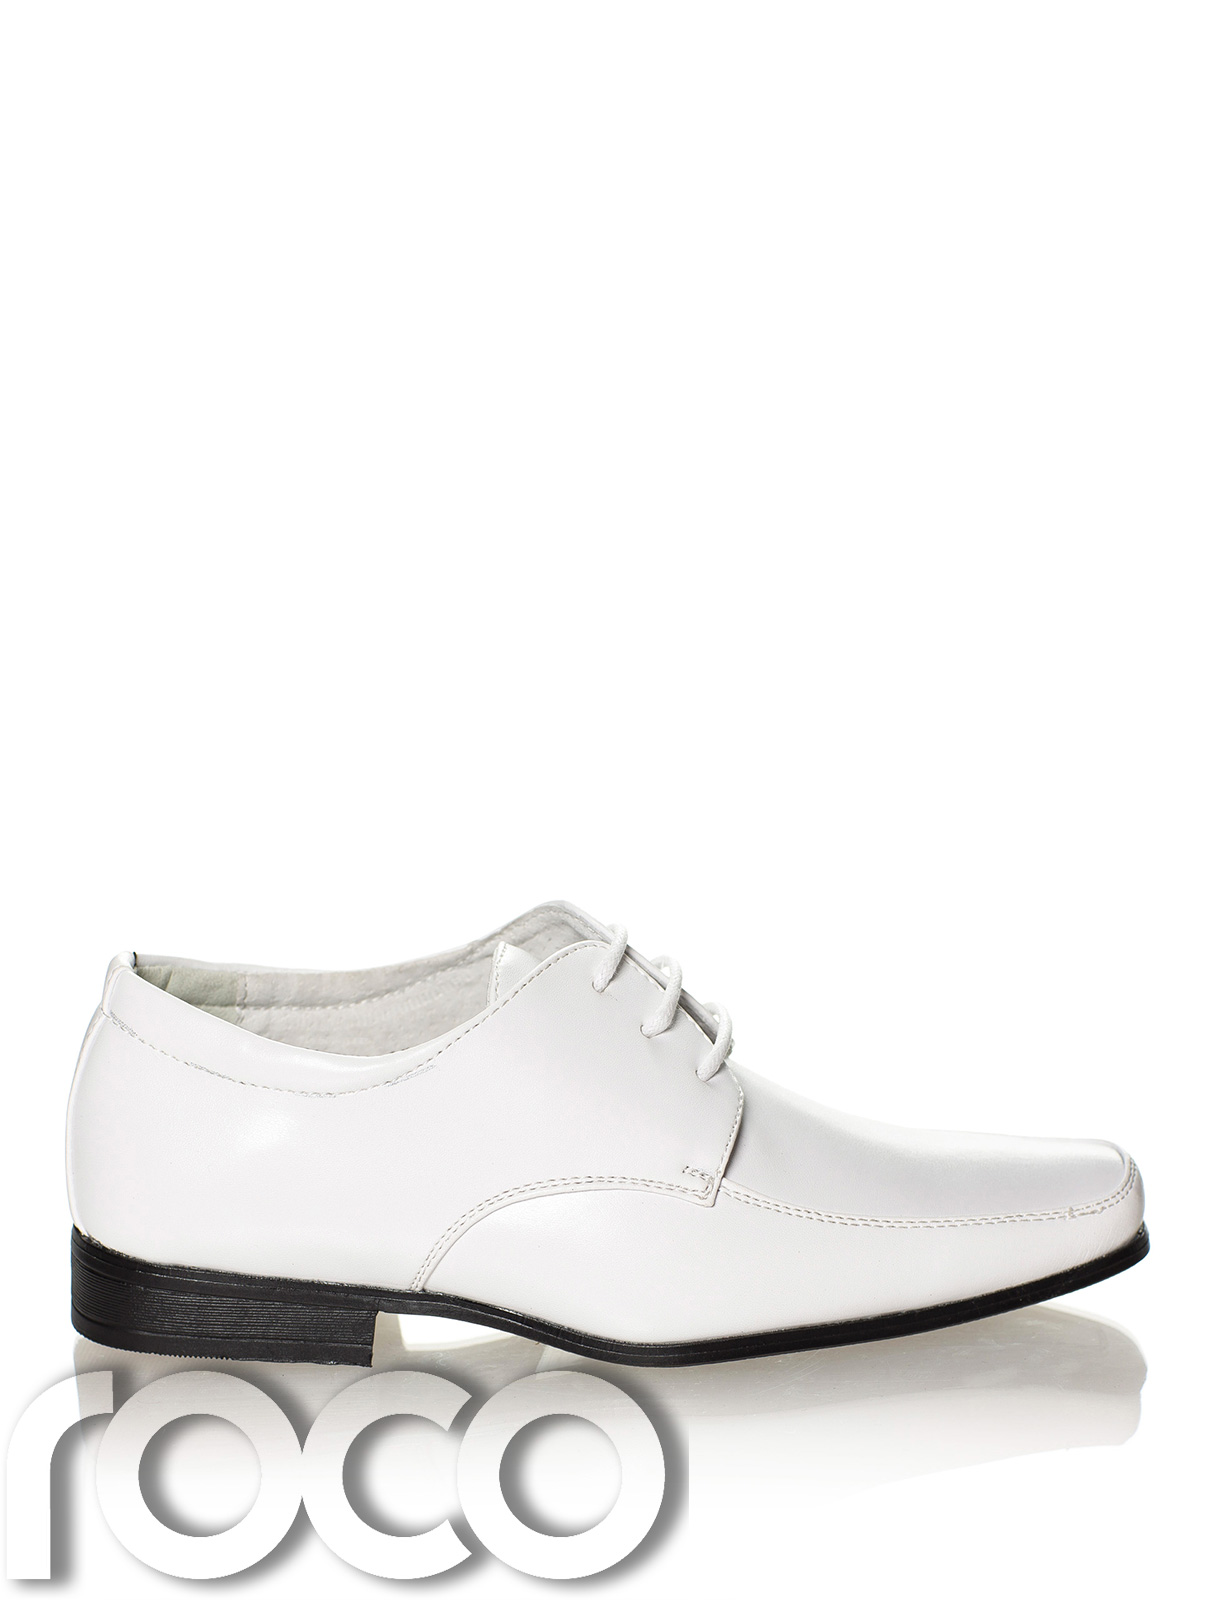 Boys White Shoes, Prom Shoes, Page Boys Shoes, Formal ...